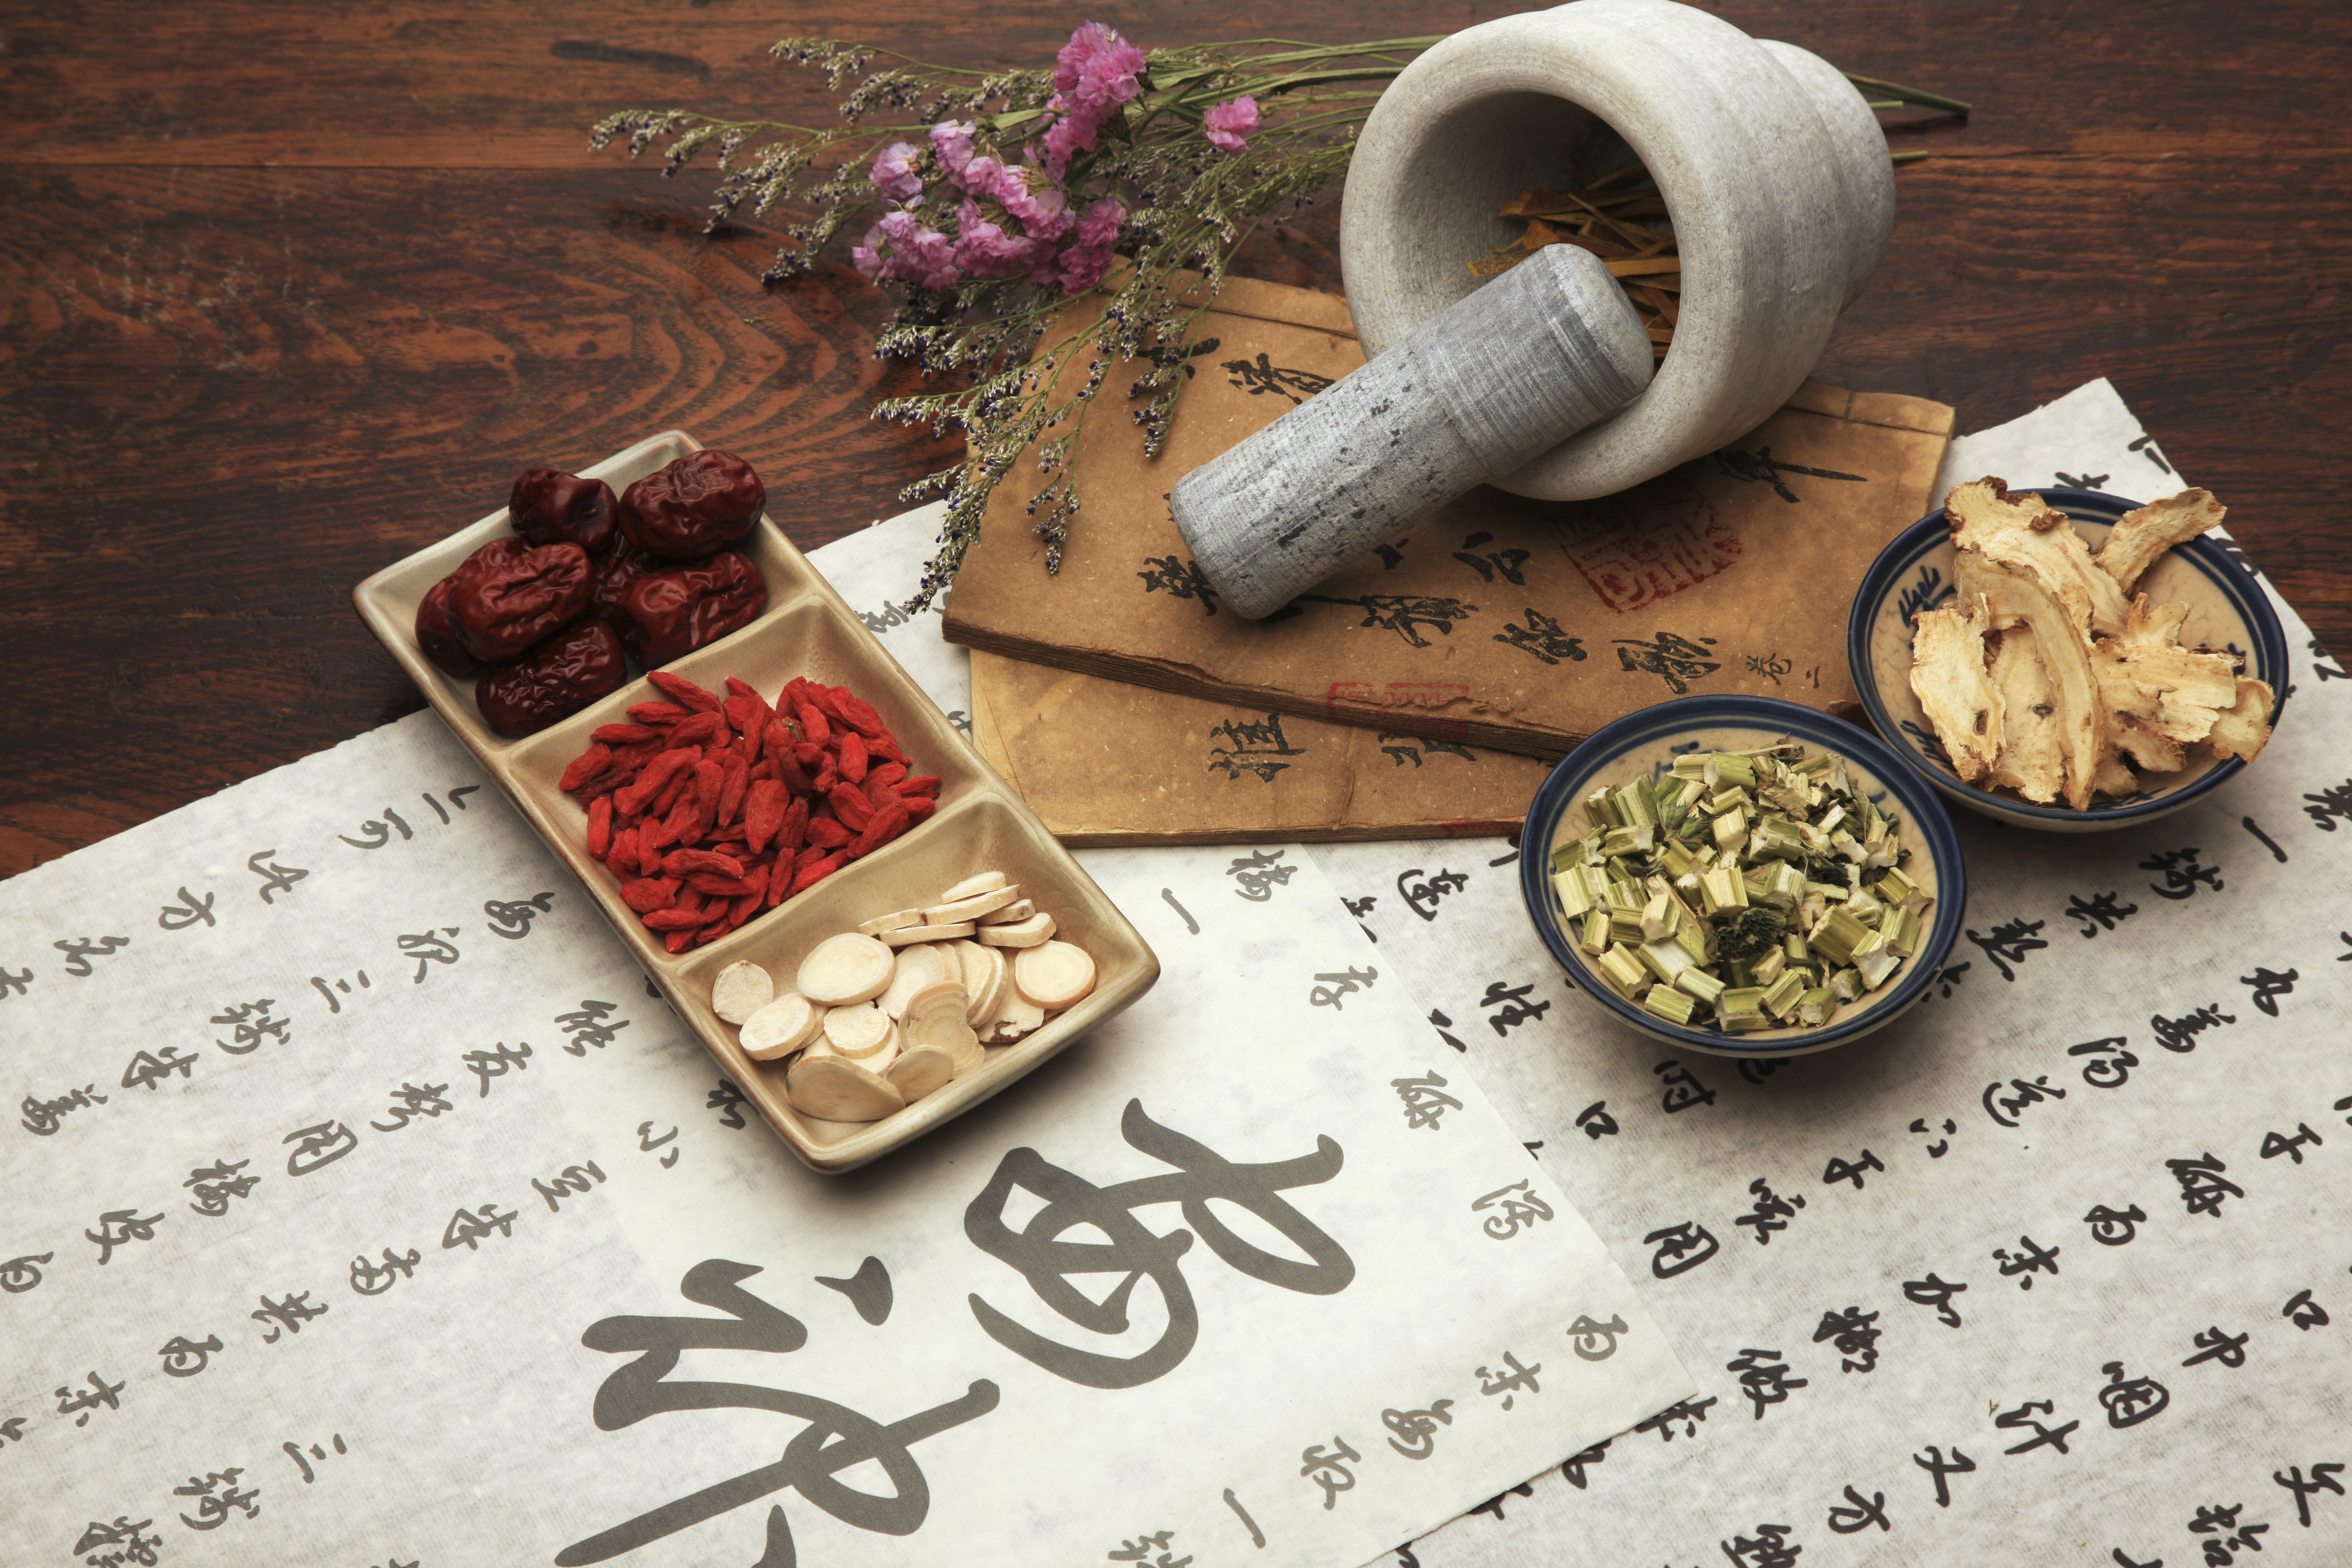 acupuncture is perfect for burnout